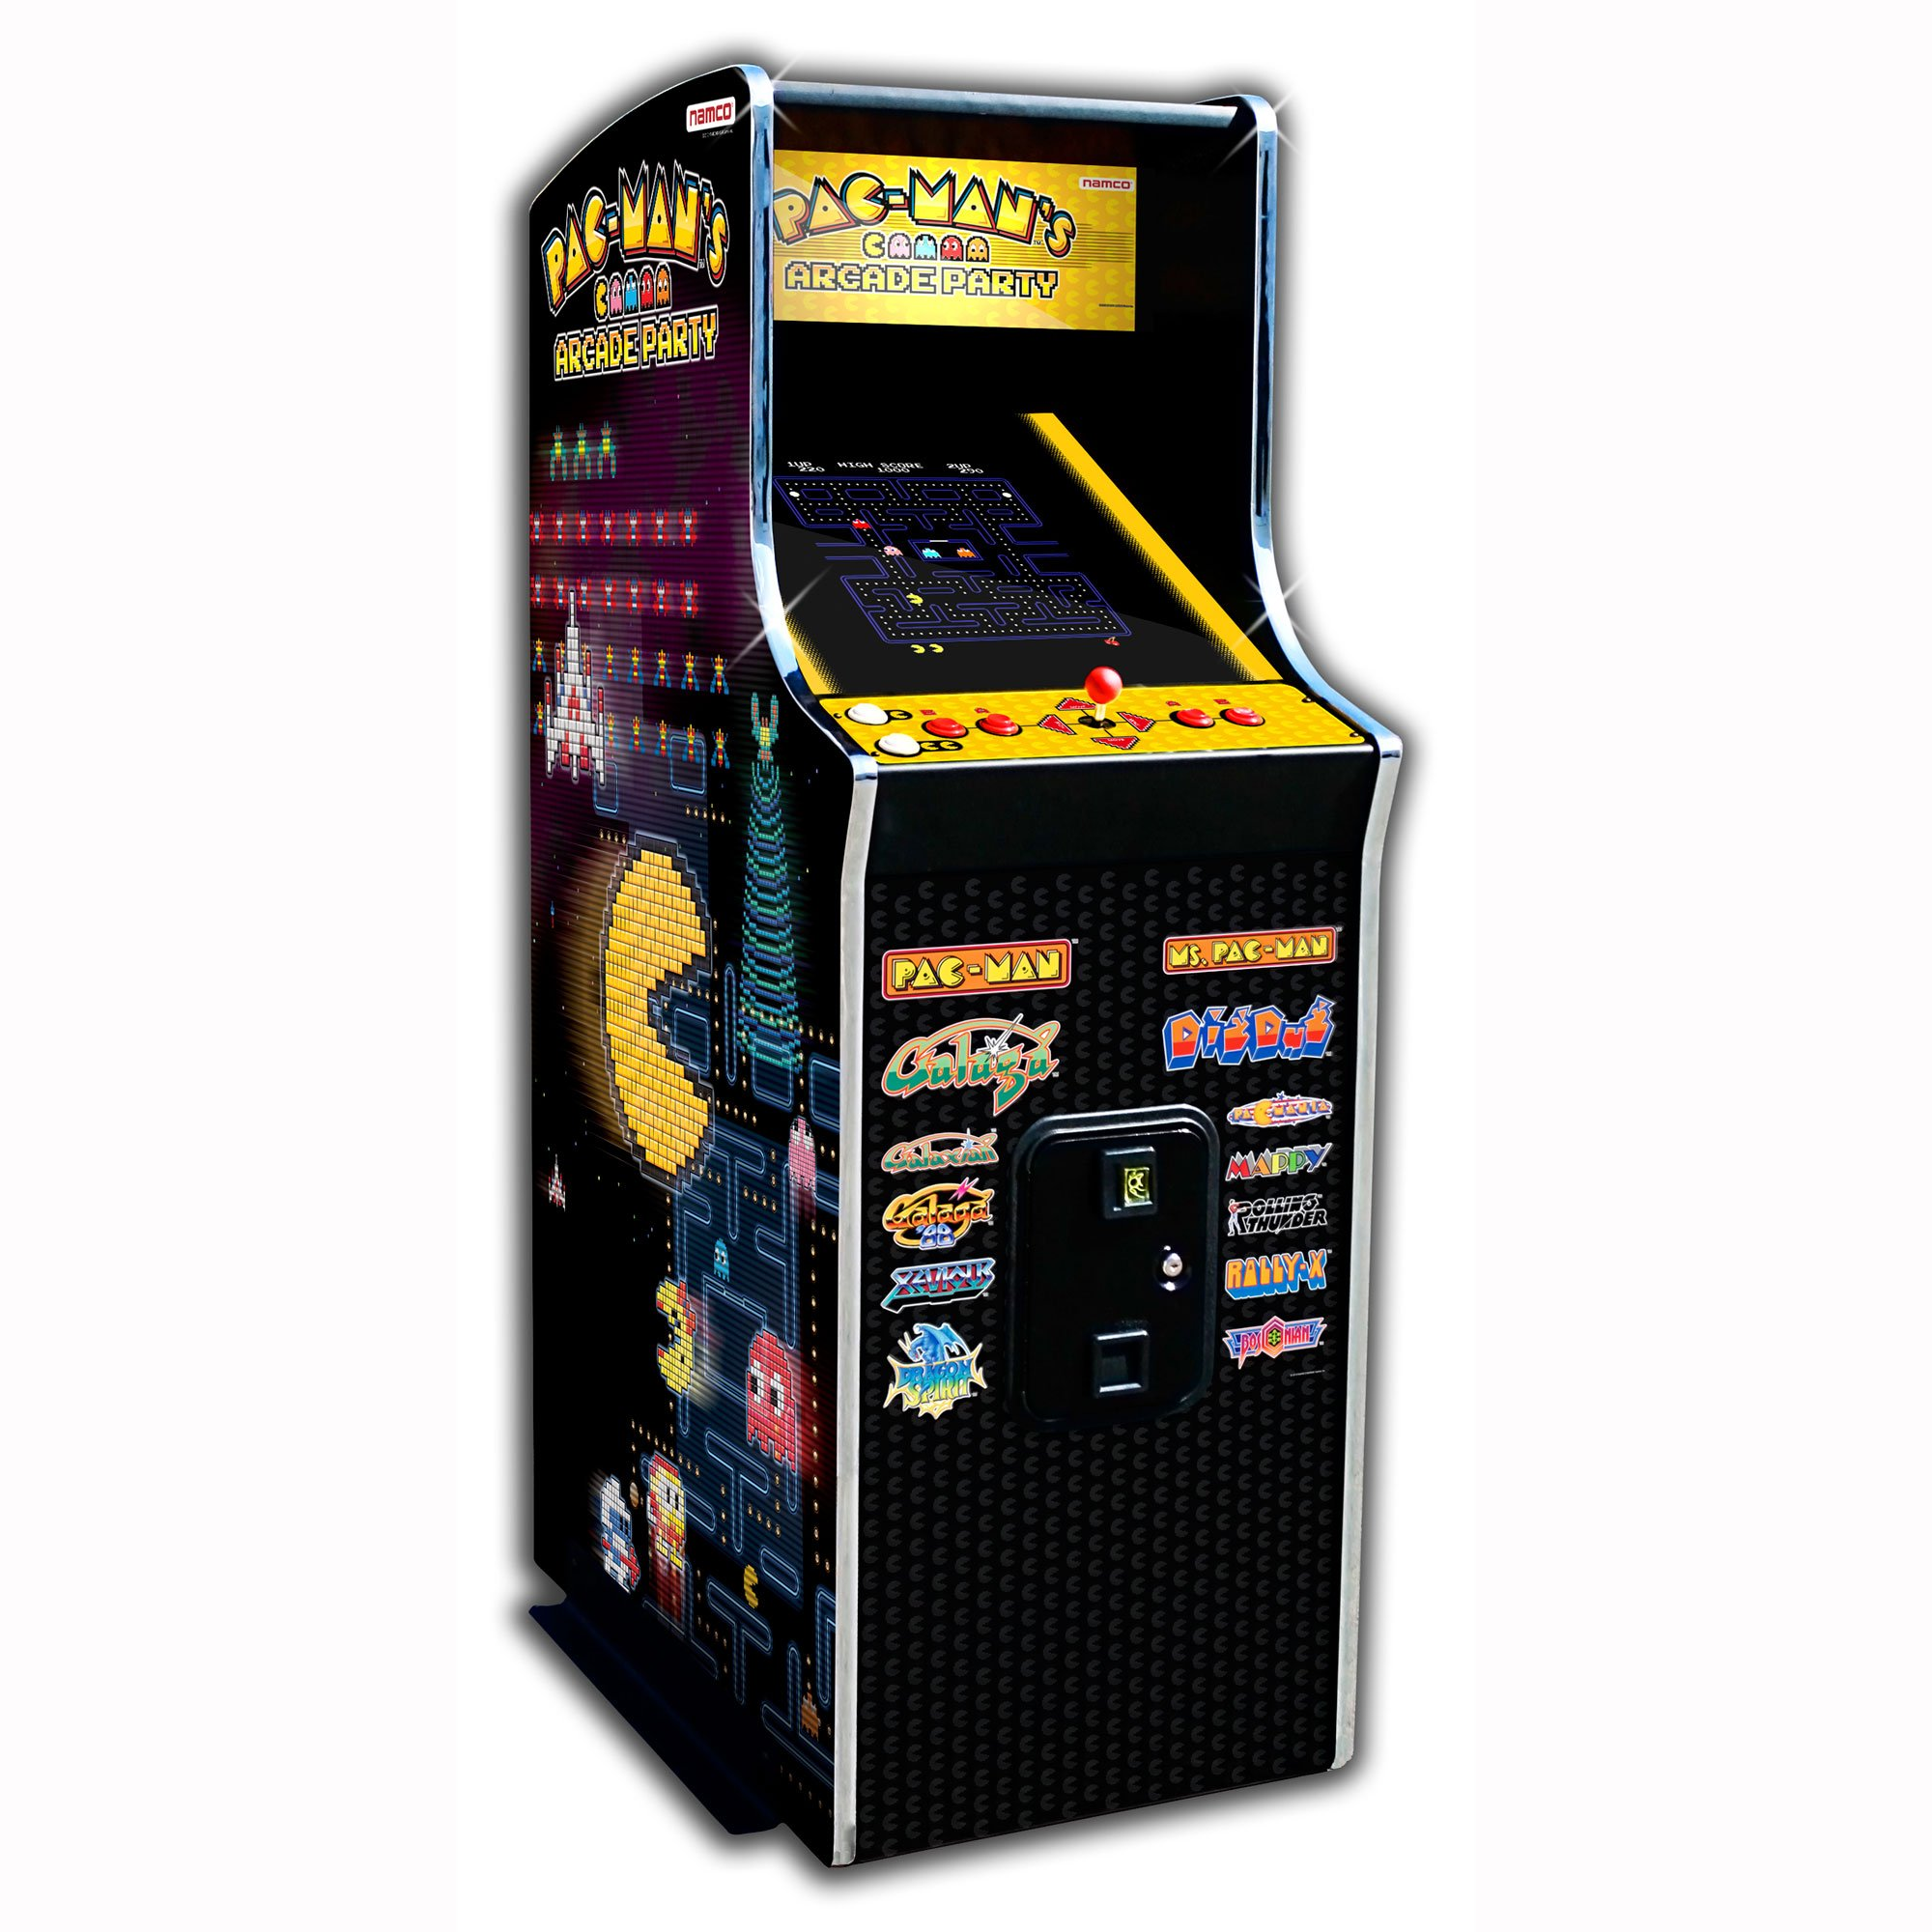 Namco Pac-Mans Arcade Party Coin-Op Upright Game Cabinet